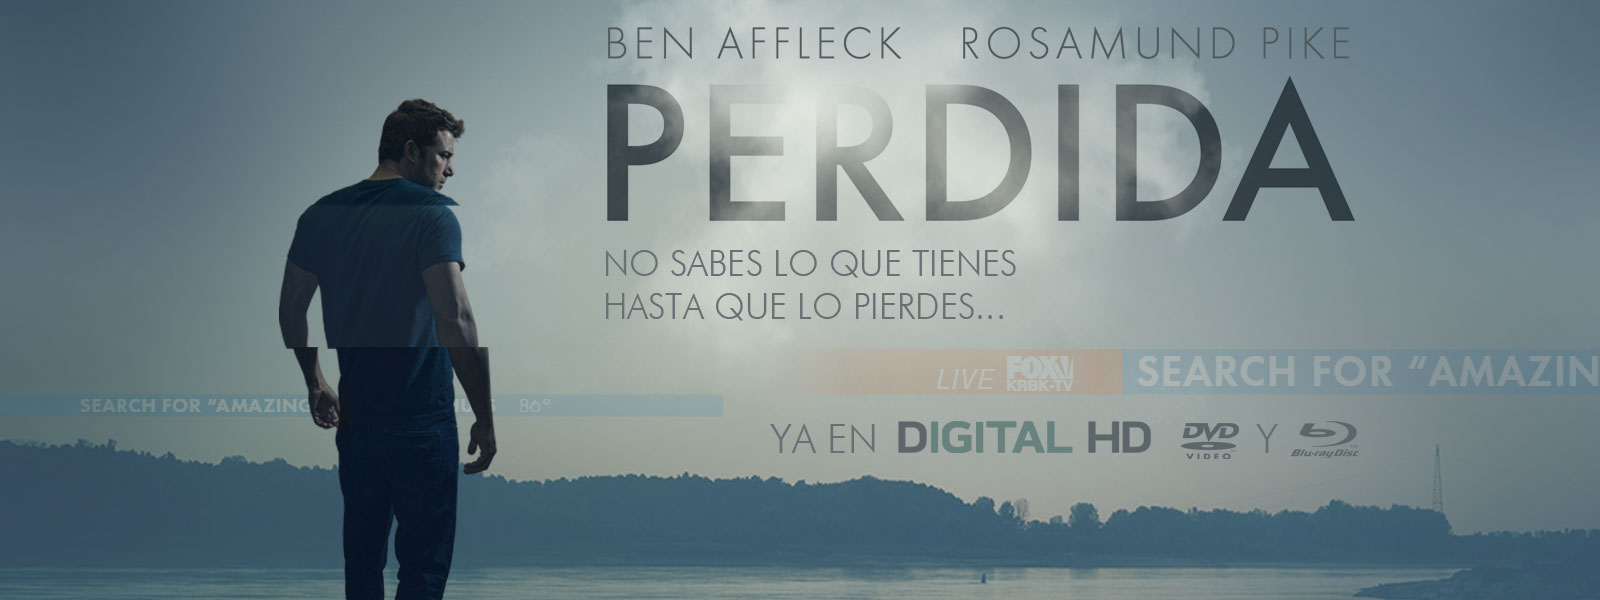 Perdida. Ya en Blu-ray, DVD y Digital HD